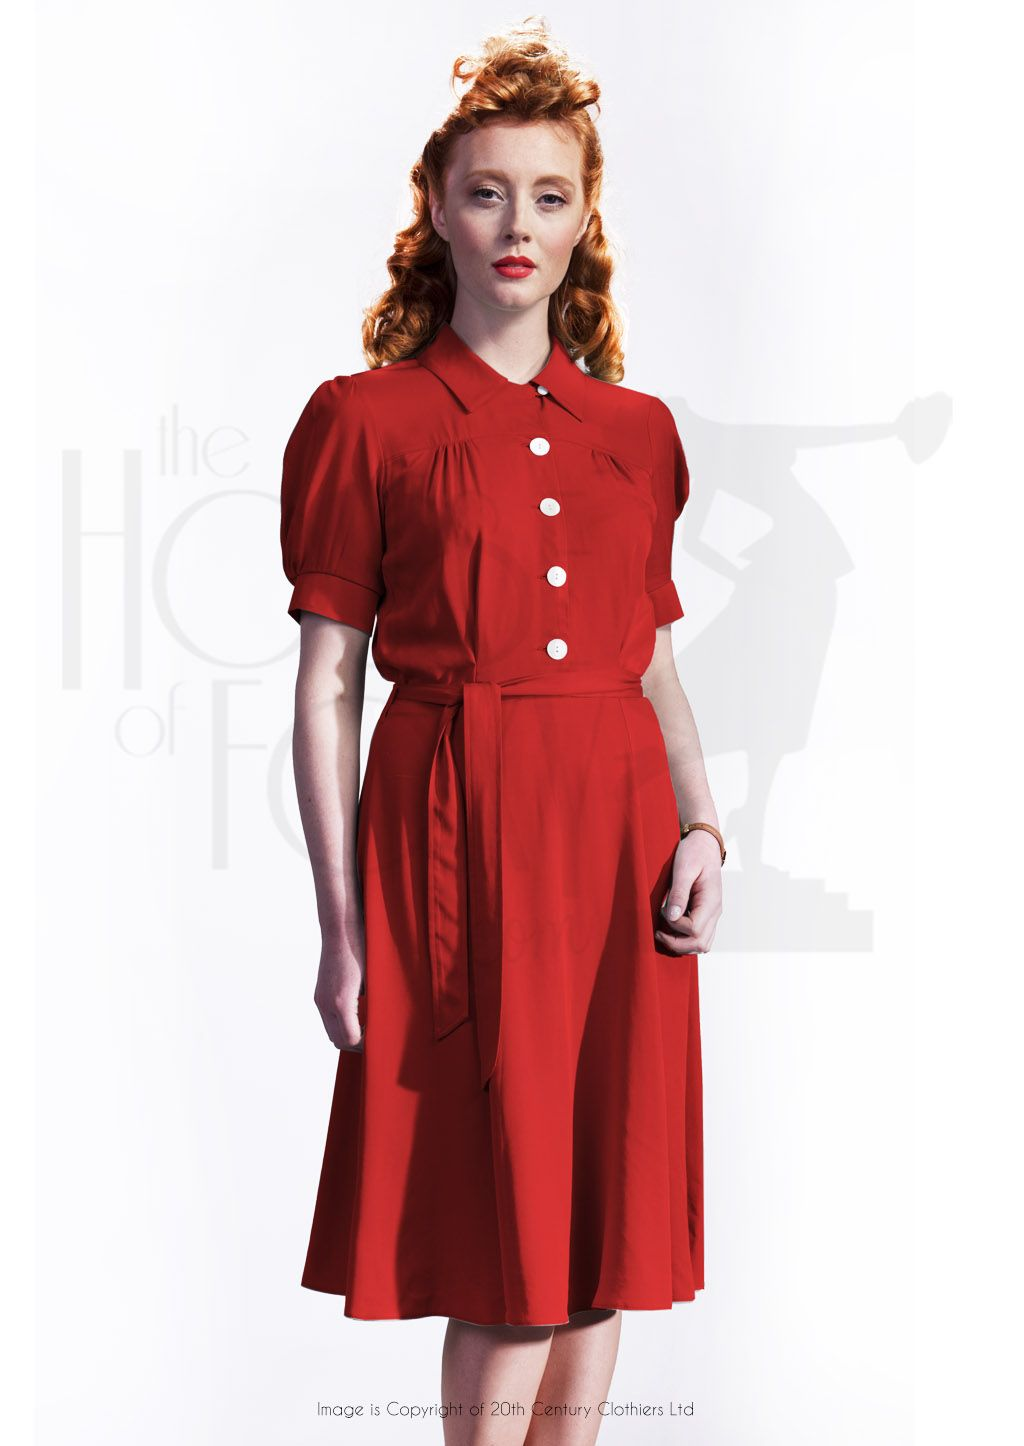 1940s Style Shirt Waister Dress In Red 1940s Fashion 1940s Fashion Dresses Dresses [ 1446 x 1024 Pixel ]